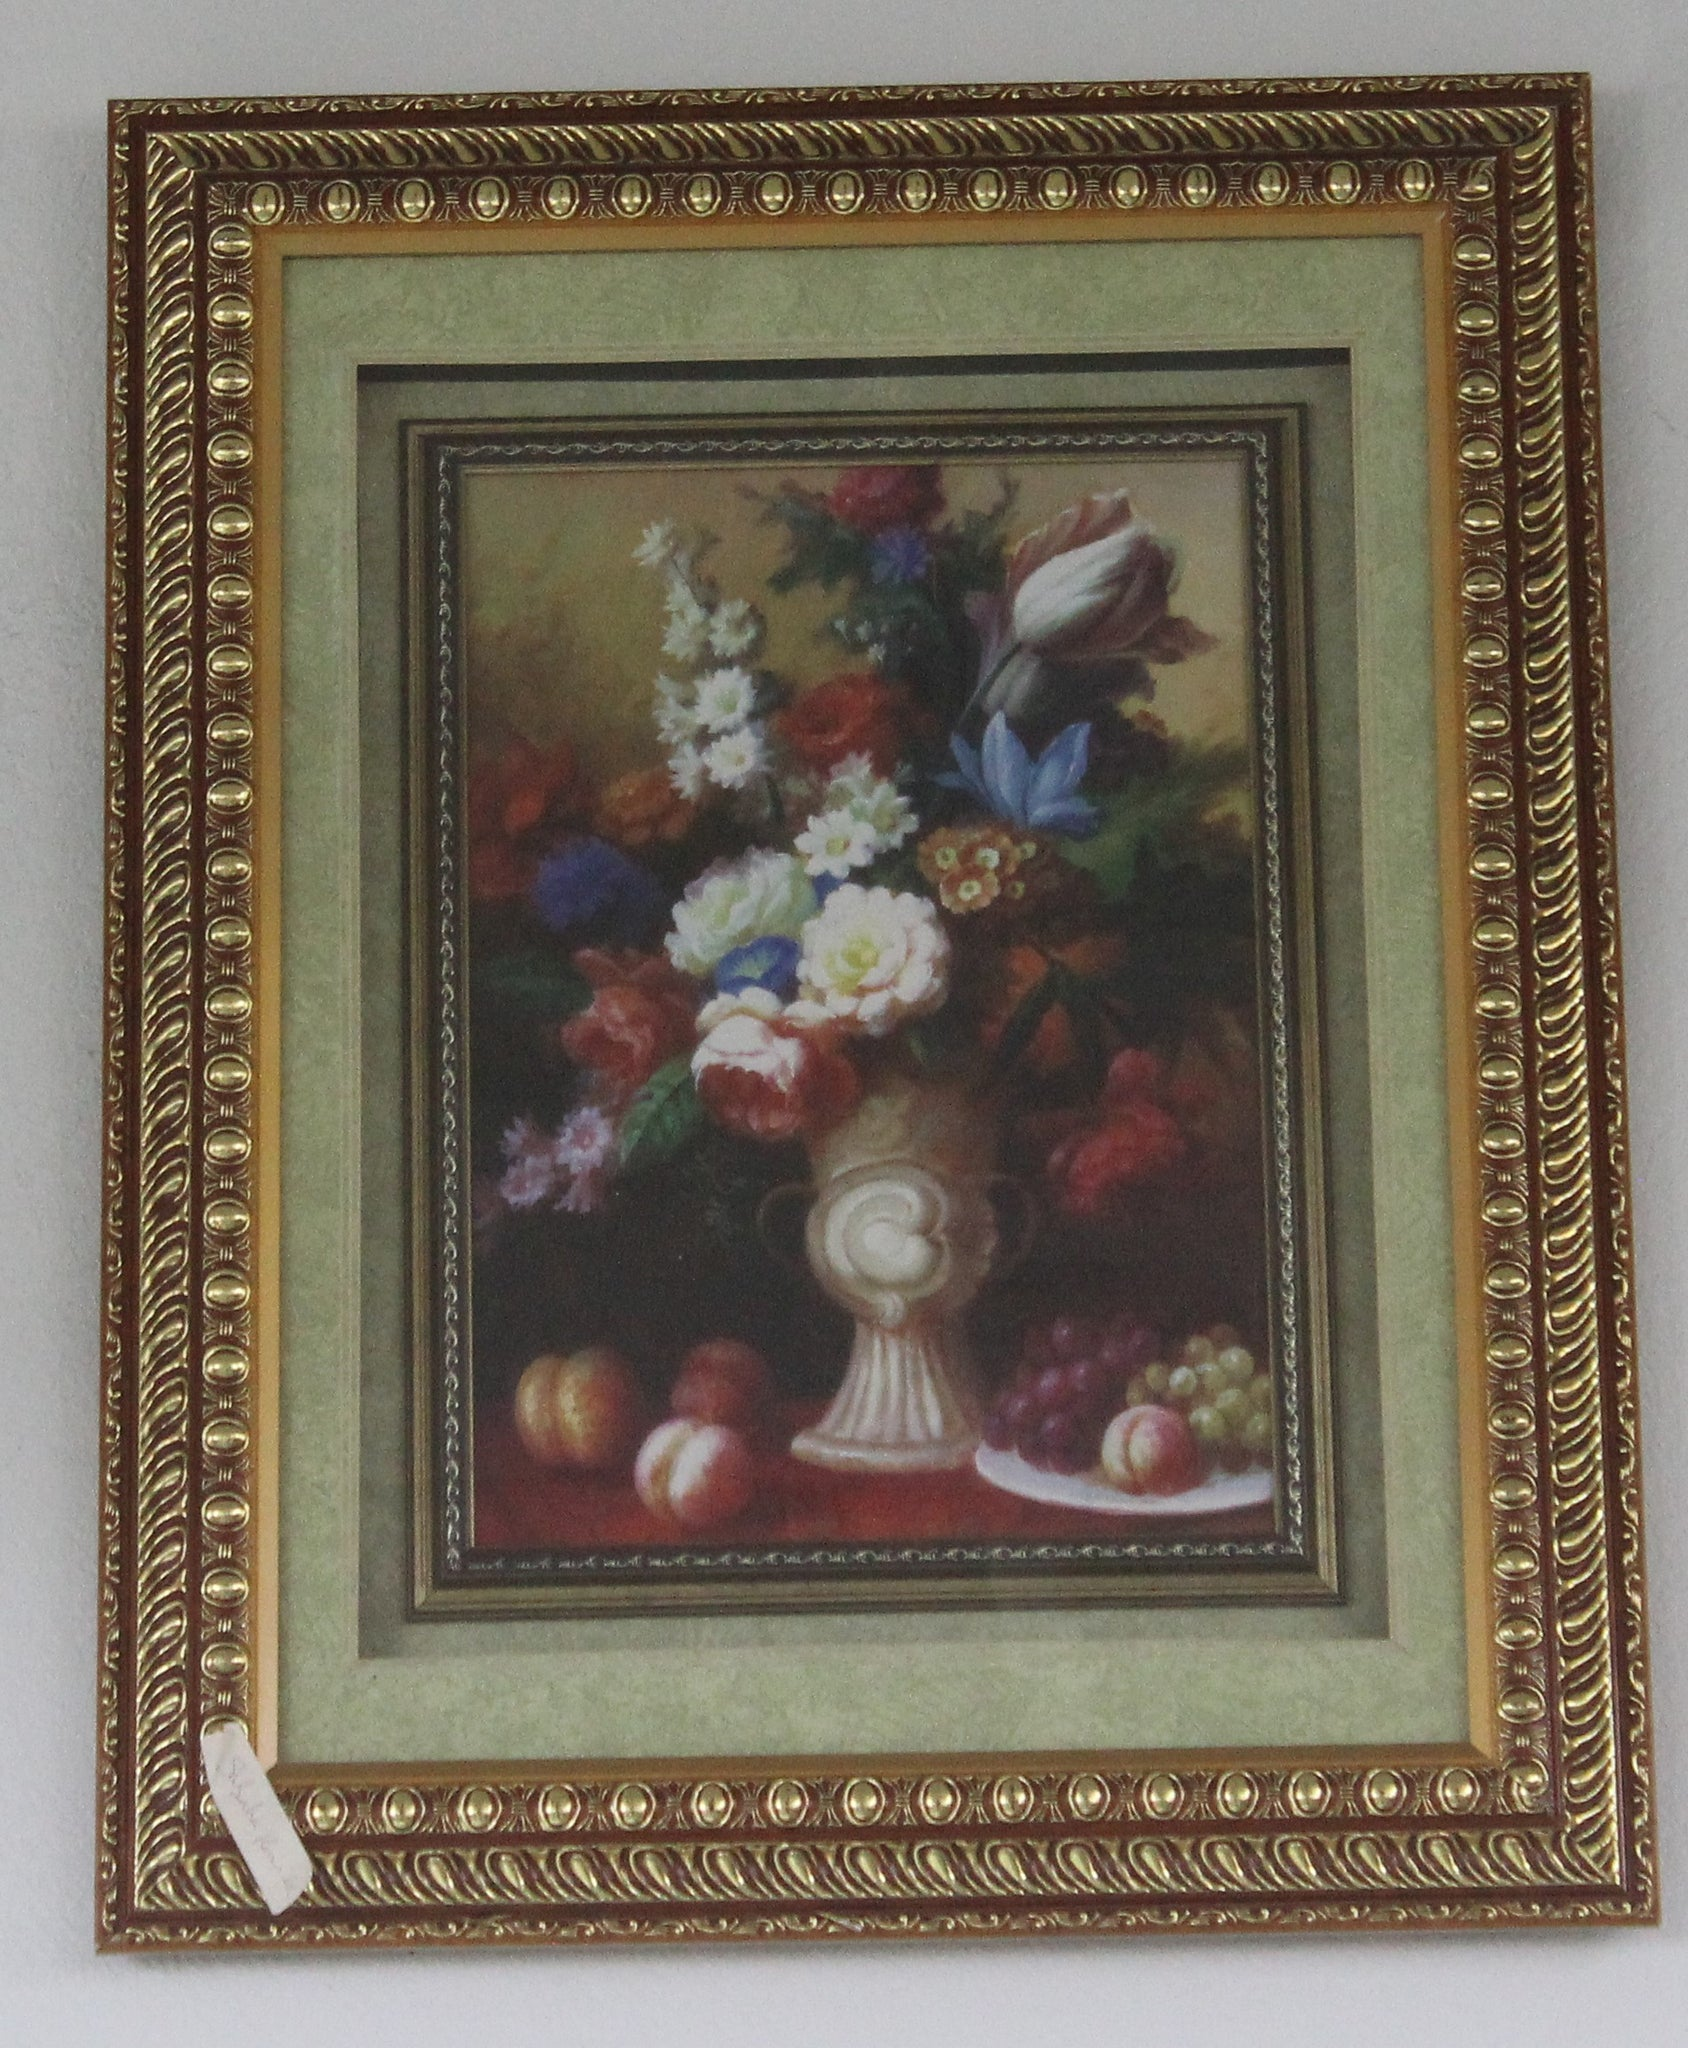 Flowers & Fruits Frame